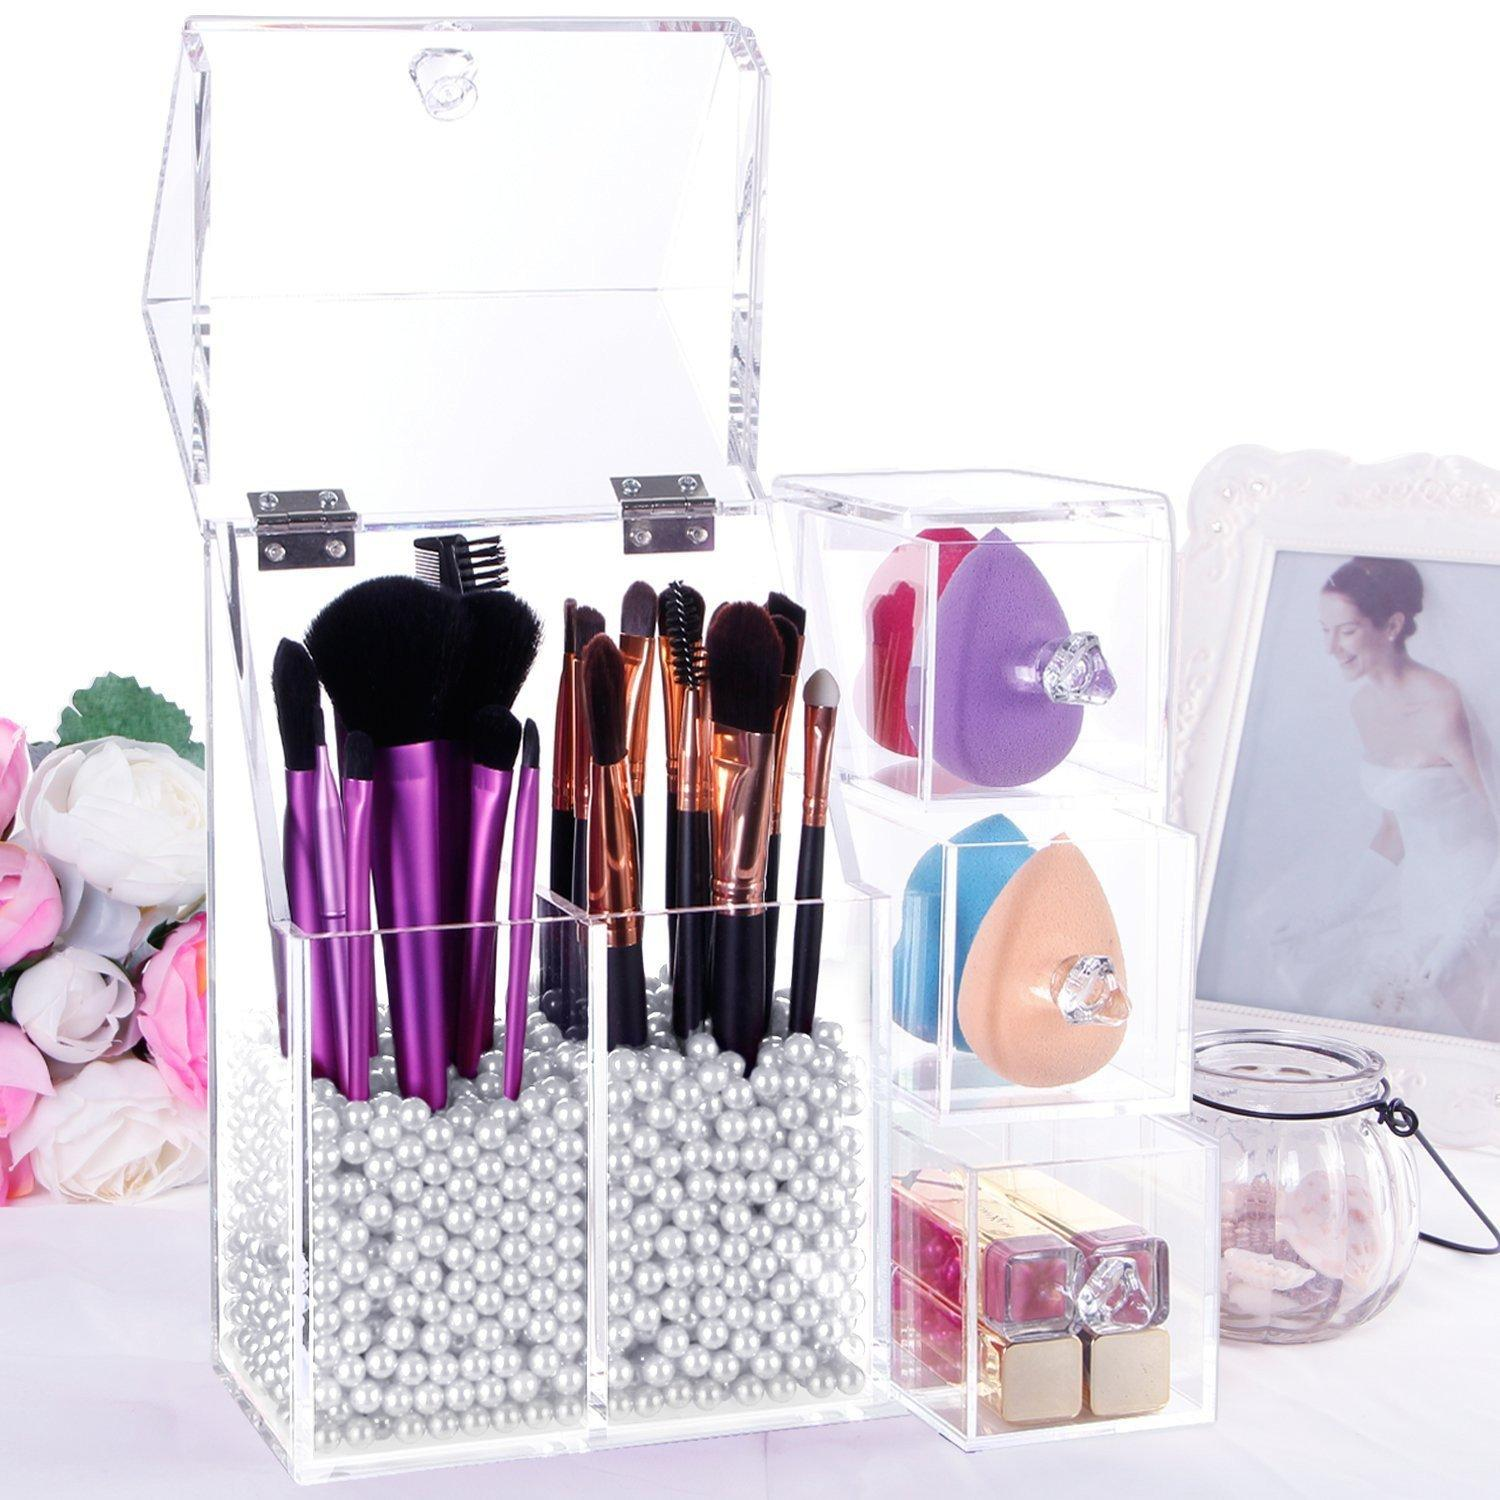 Acrylic Dustproof Make Up Brushes Tools Holder Organizer with Lid and Drawers Big Philippines